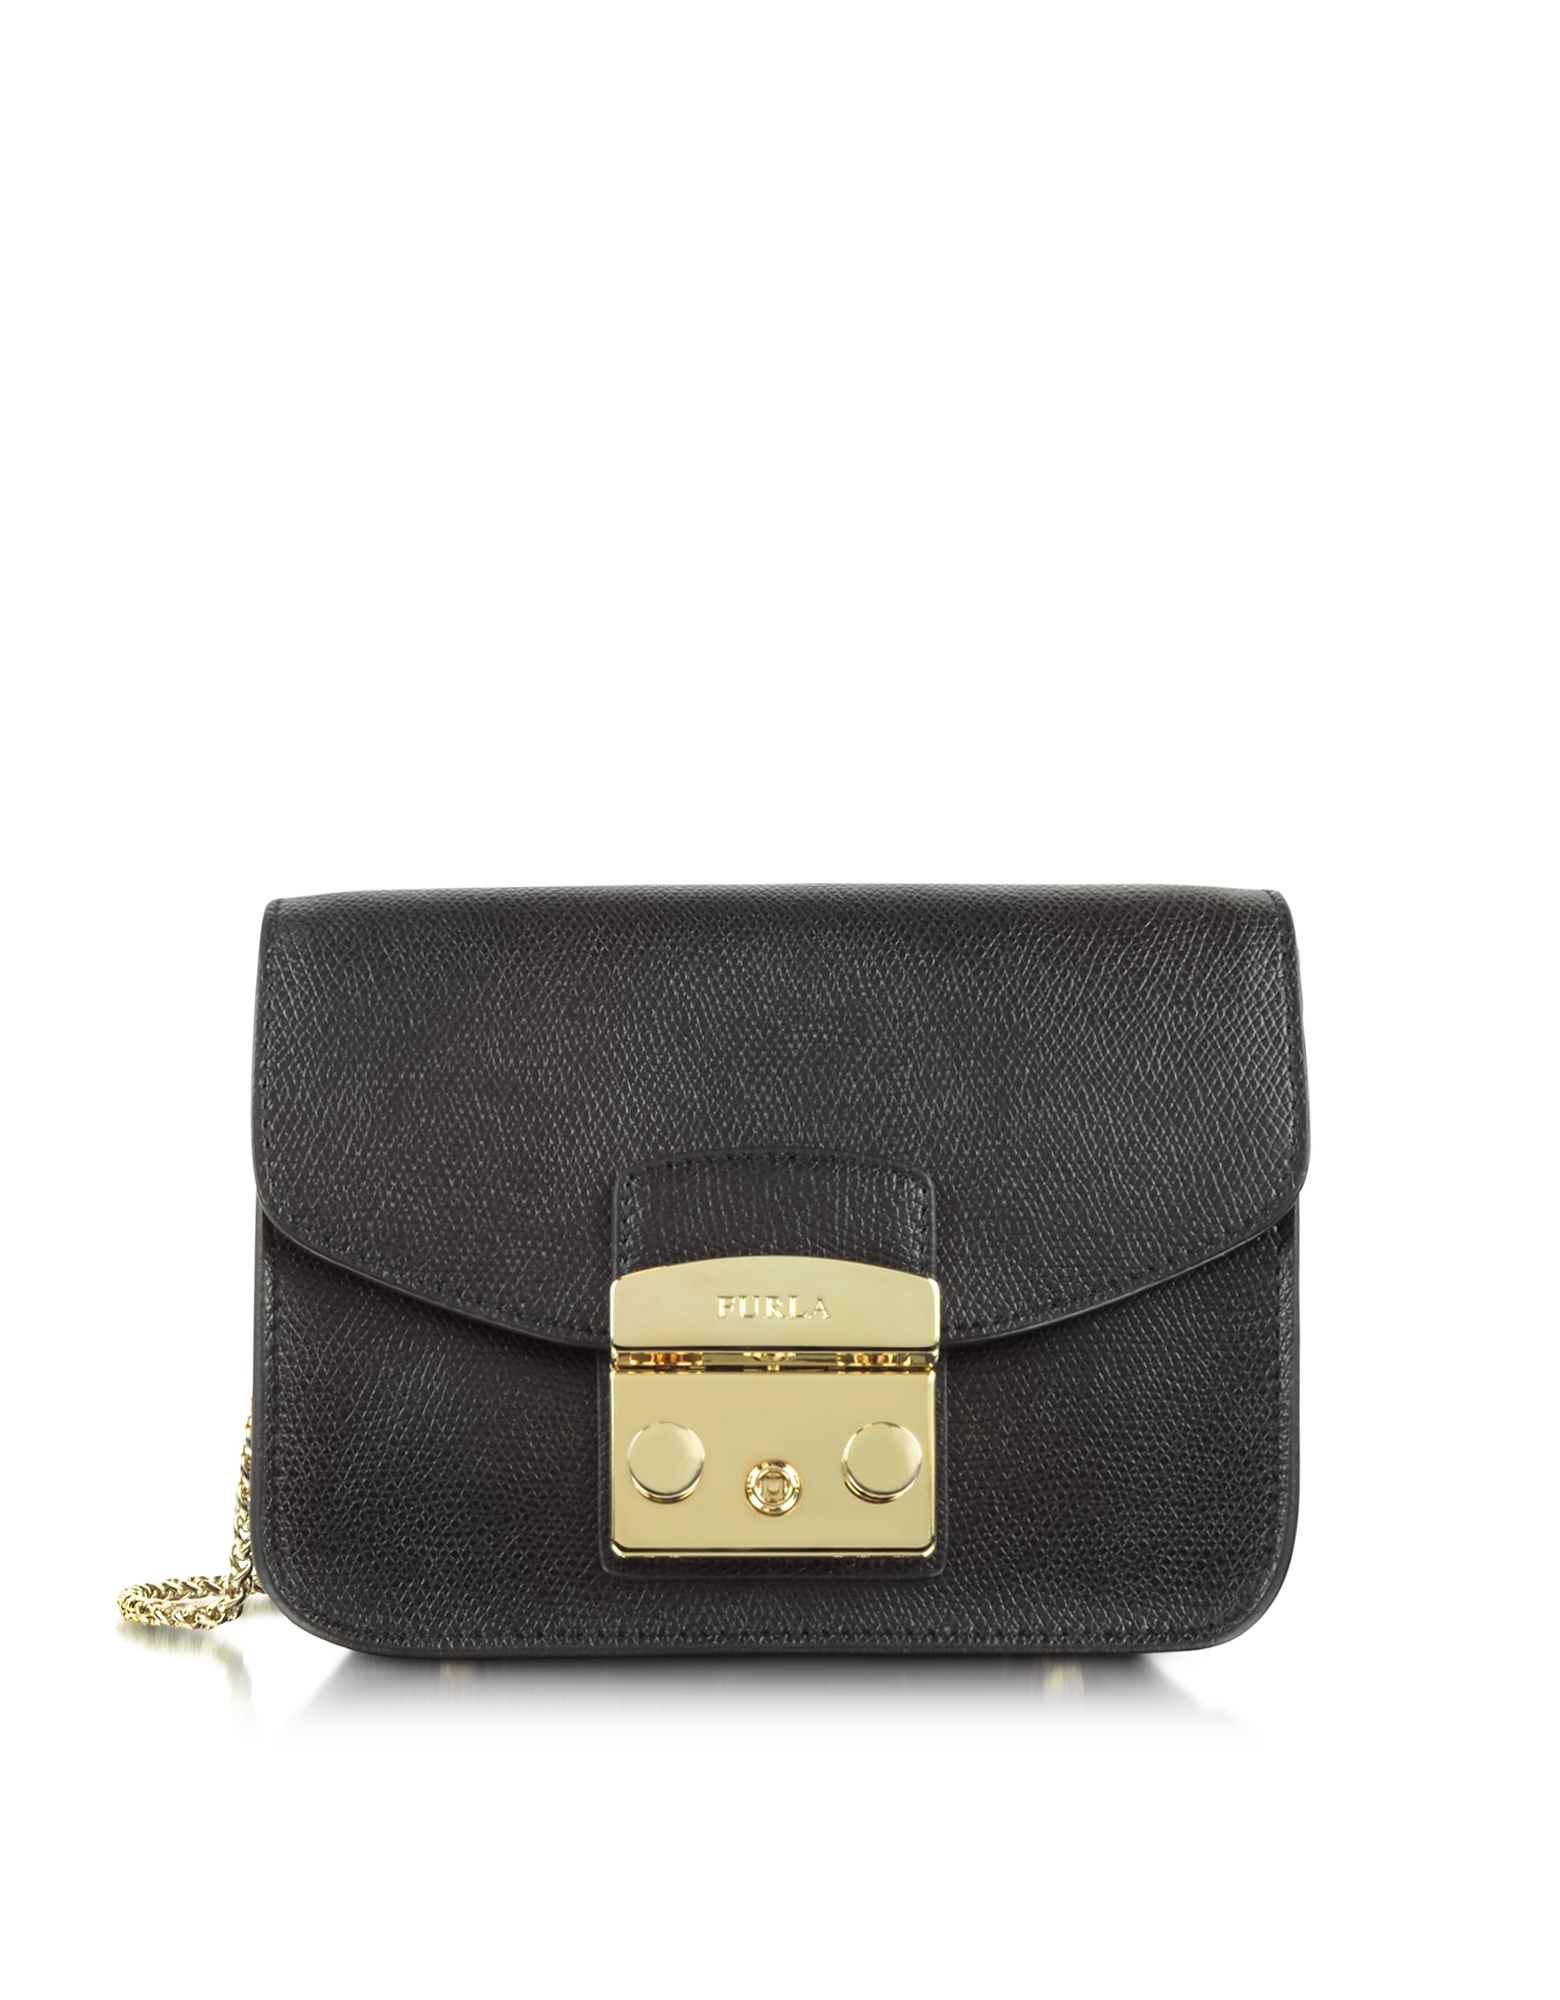 Furla Handbags, Metropolis Mini Crossbody Bag